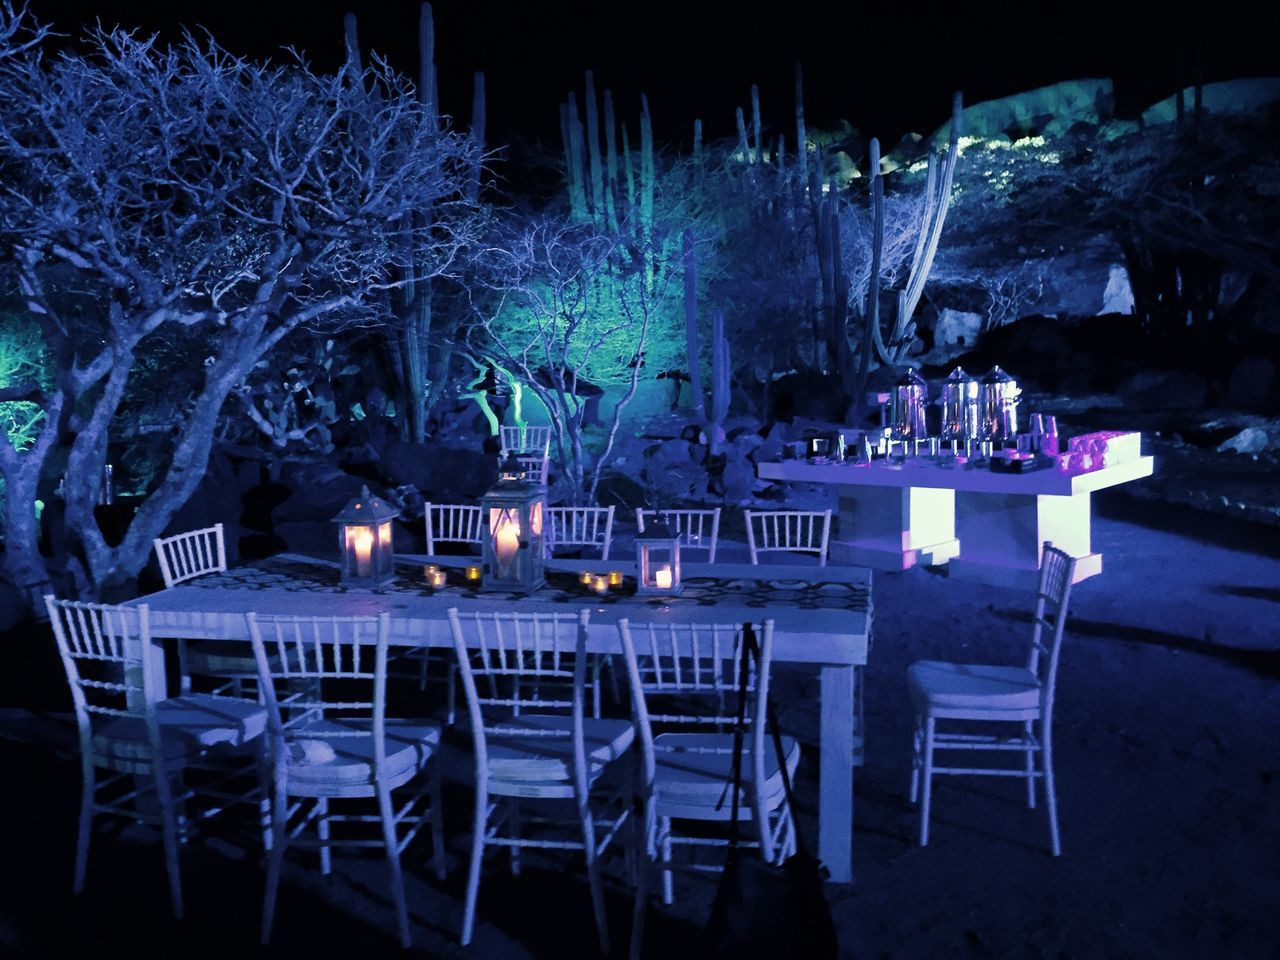 table, night, candle, chair, illuminated, empty, place setting, burning, flame, restaurant, dining table, outdoors, spirituality, no people, wineglass, seat, flower